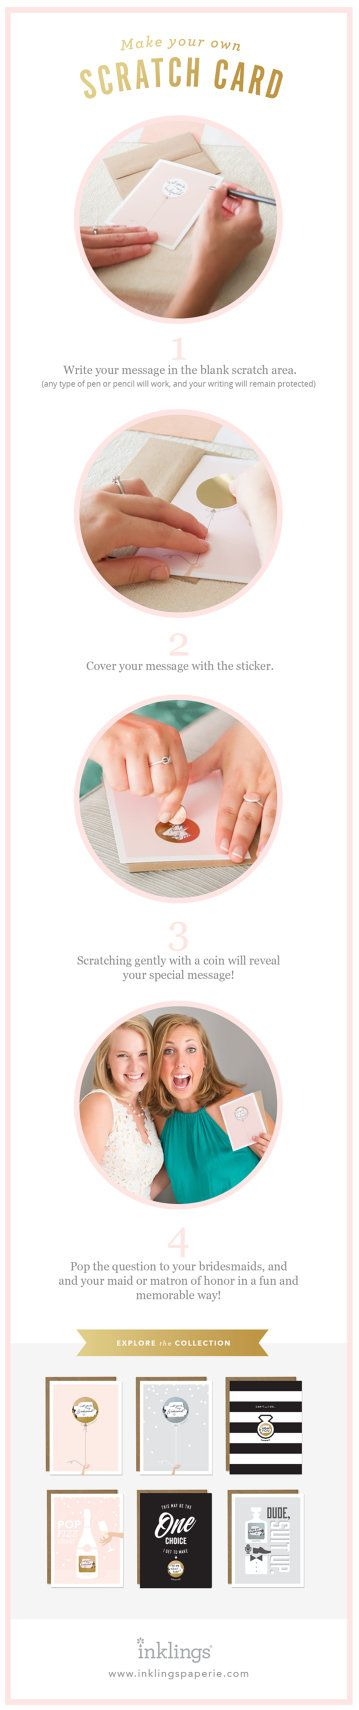 Youre getting married! Write your own message and pop the question to your bridesmaids or maid / matron of honor with this adorable scratch-off